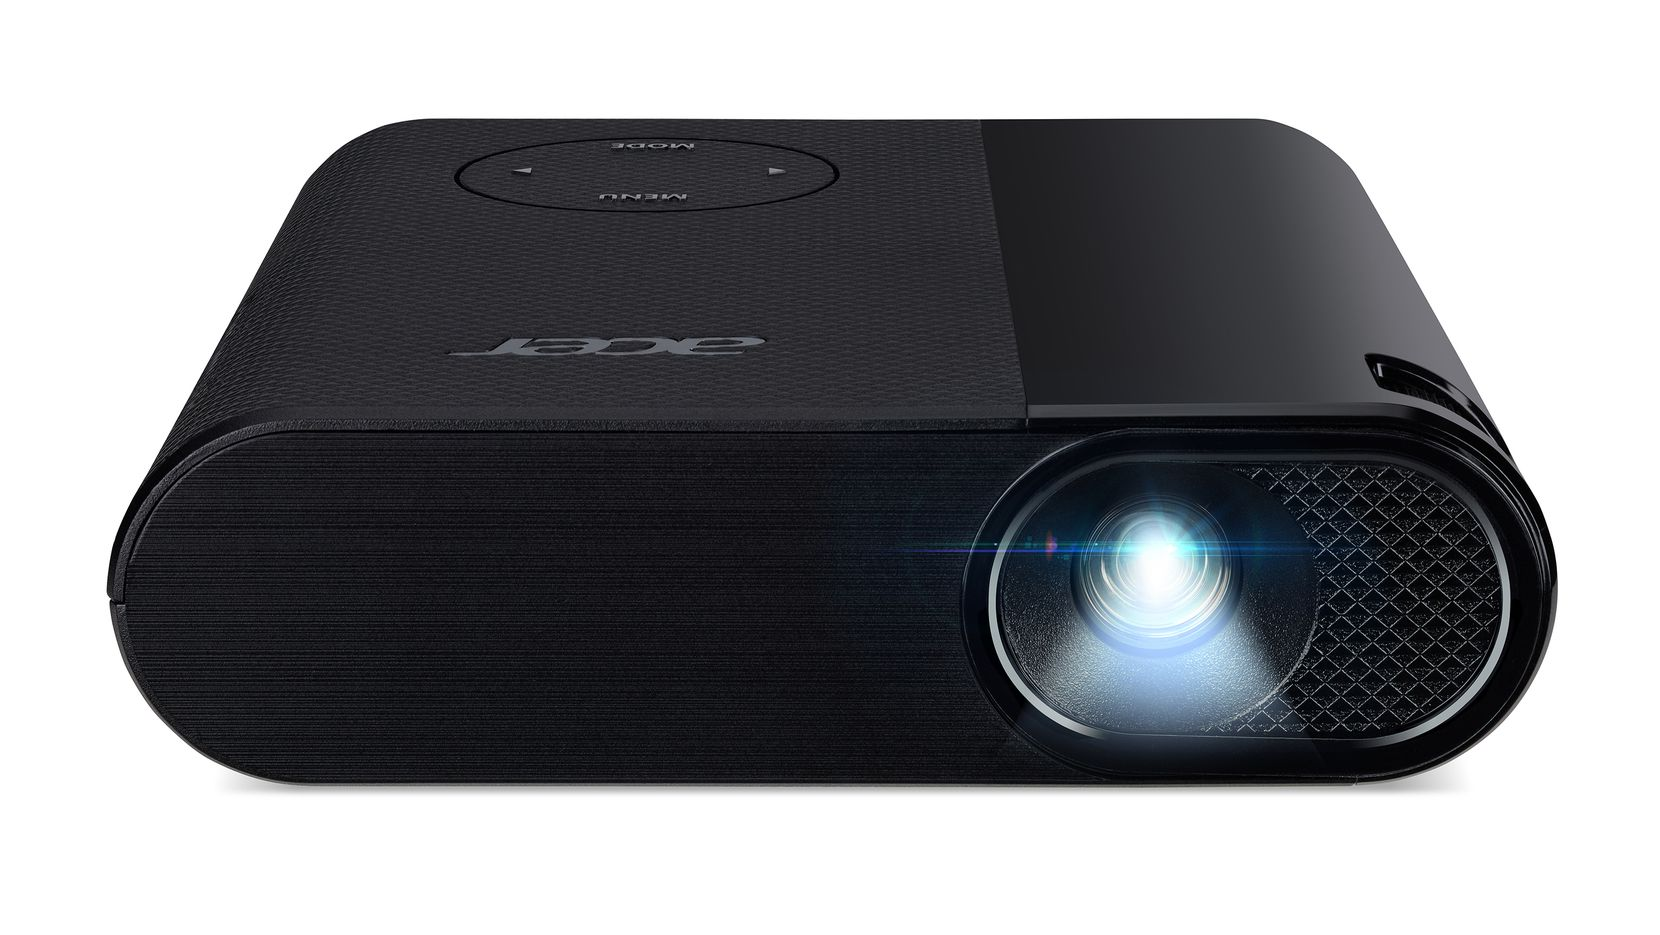 Front view of the Acer C200 projector